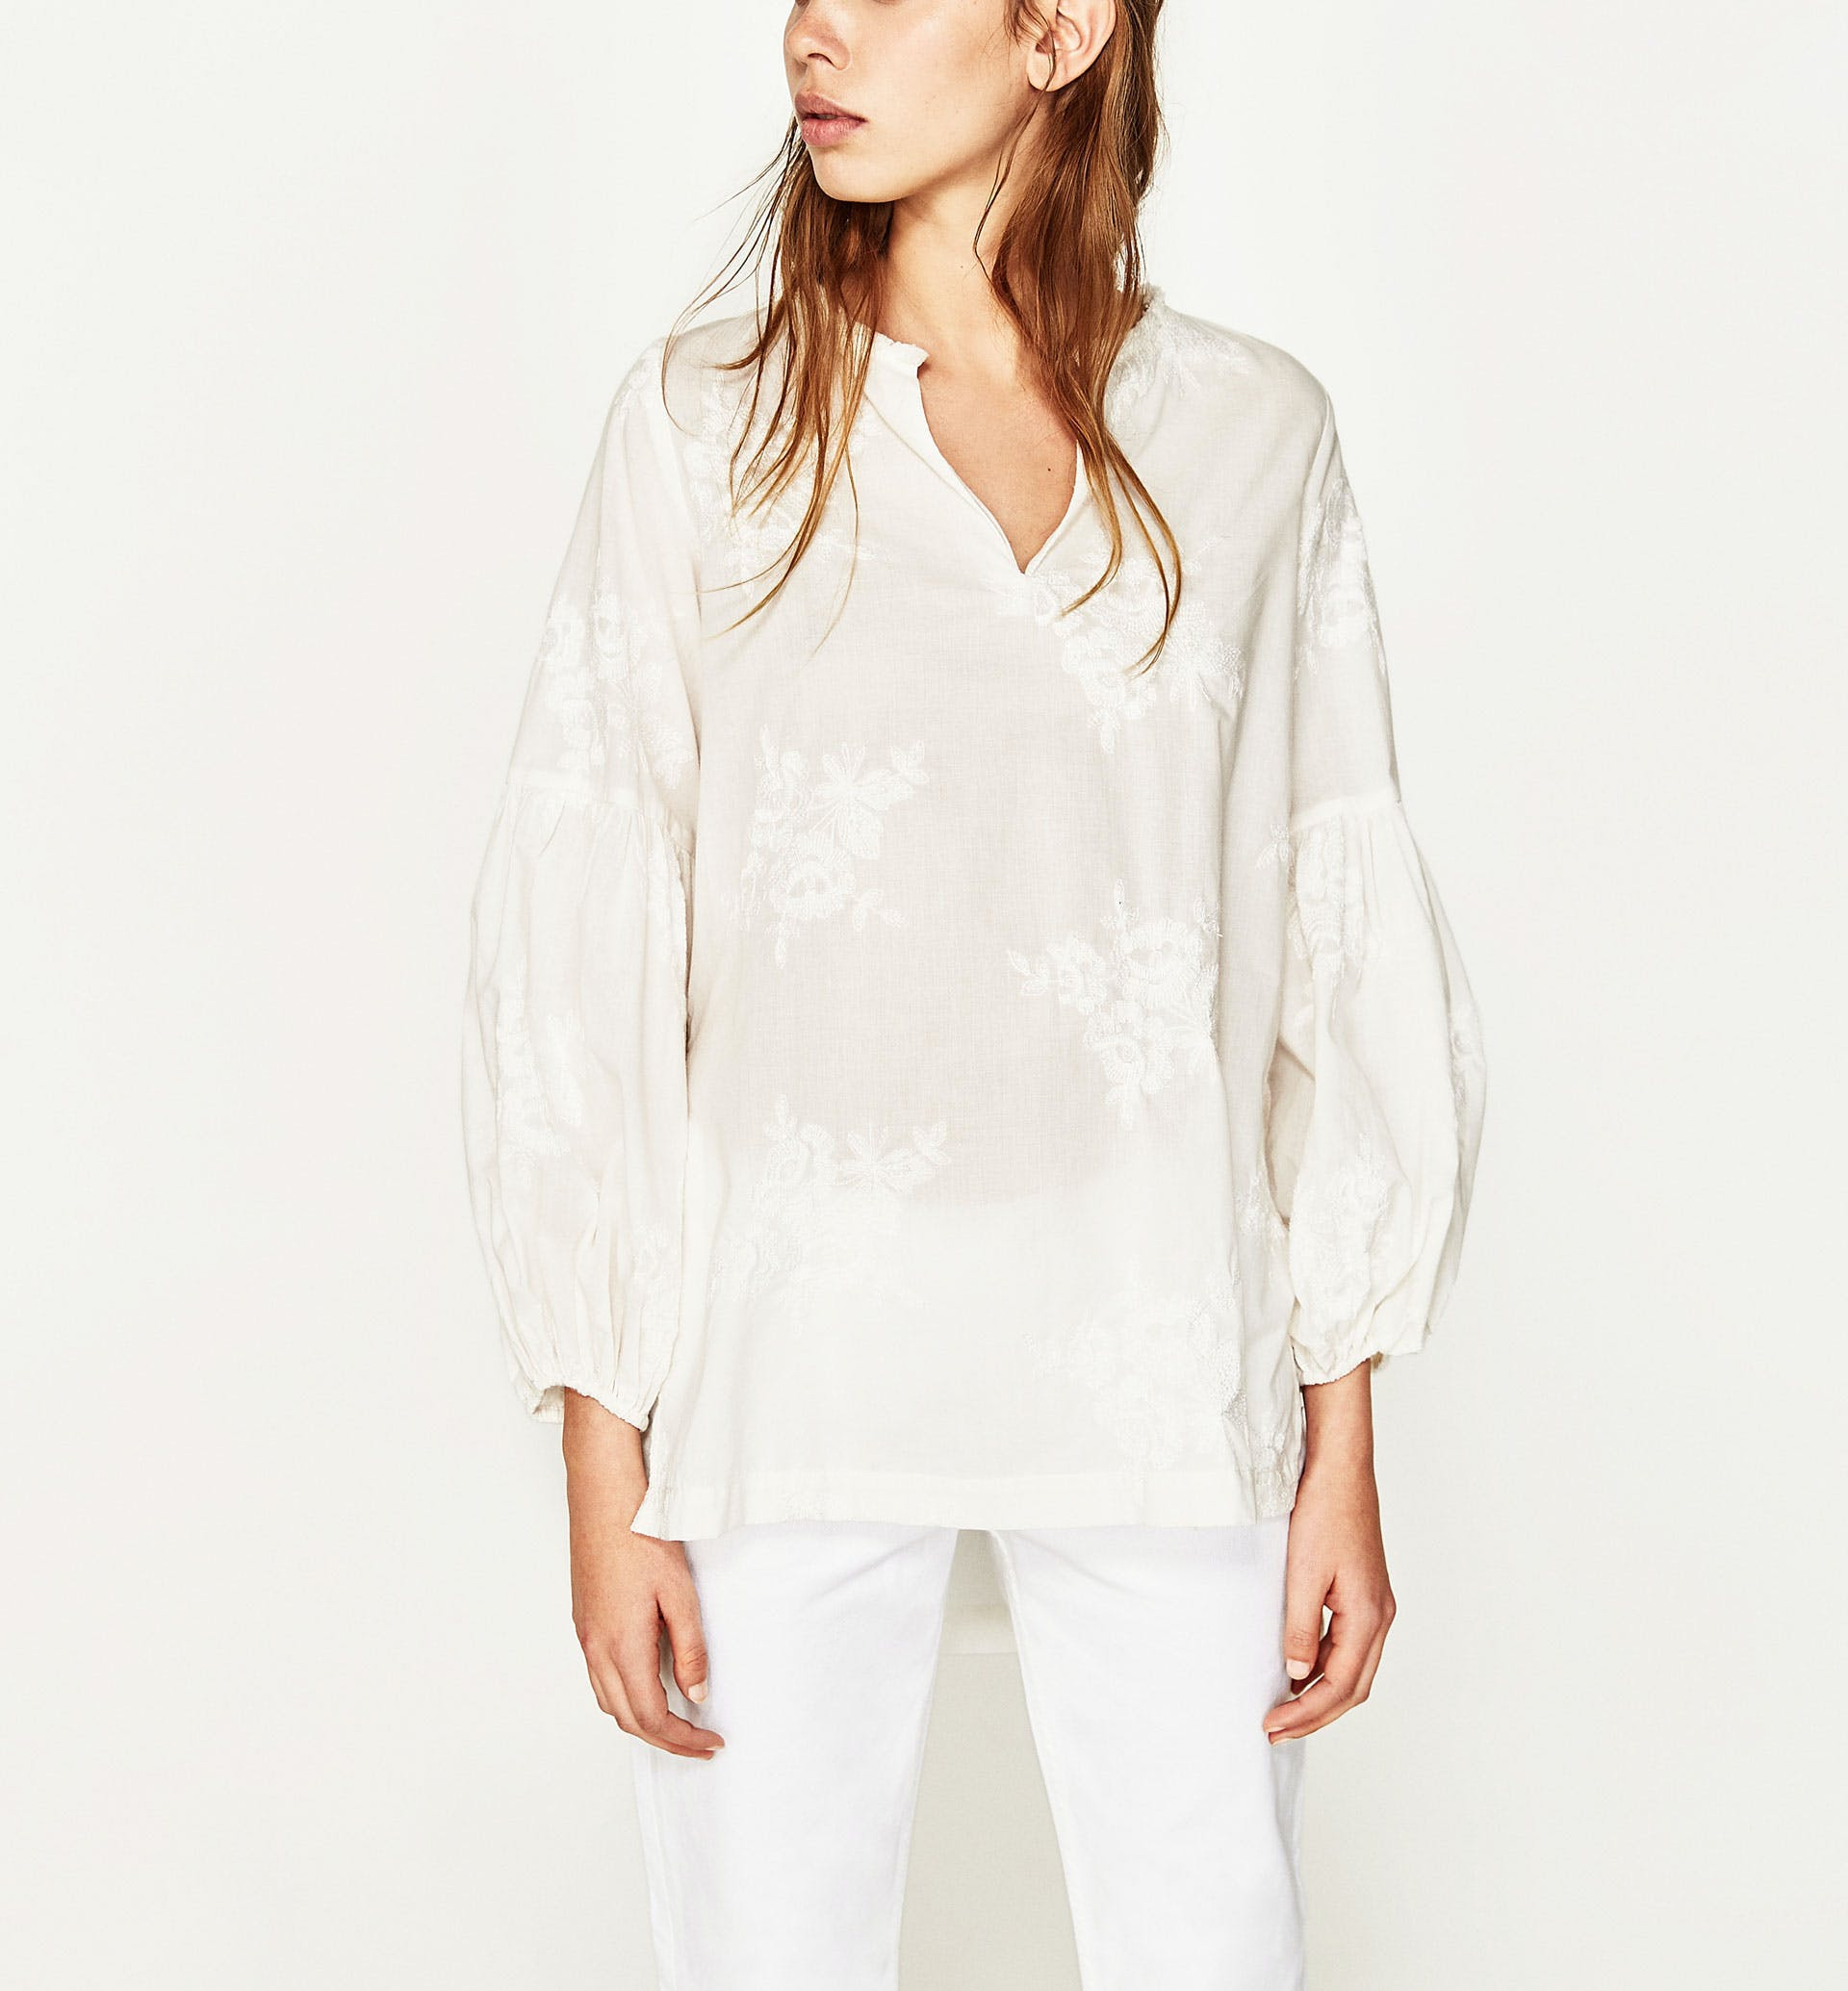 zara white shirt los angeles